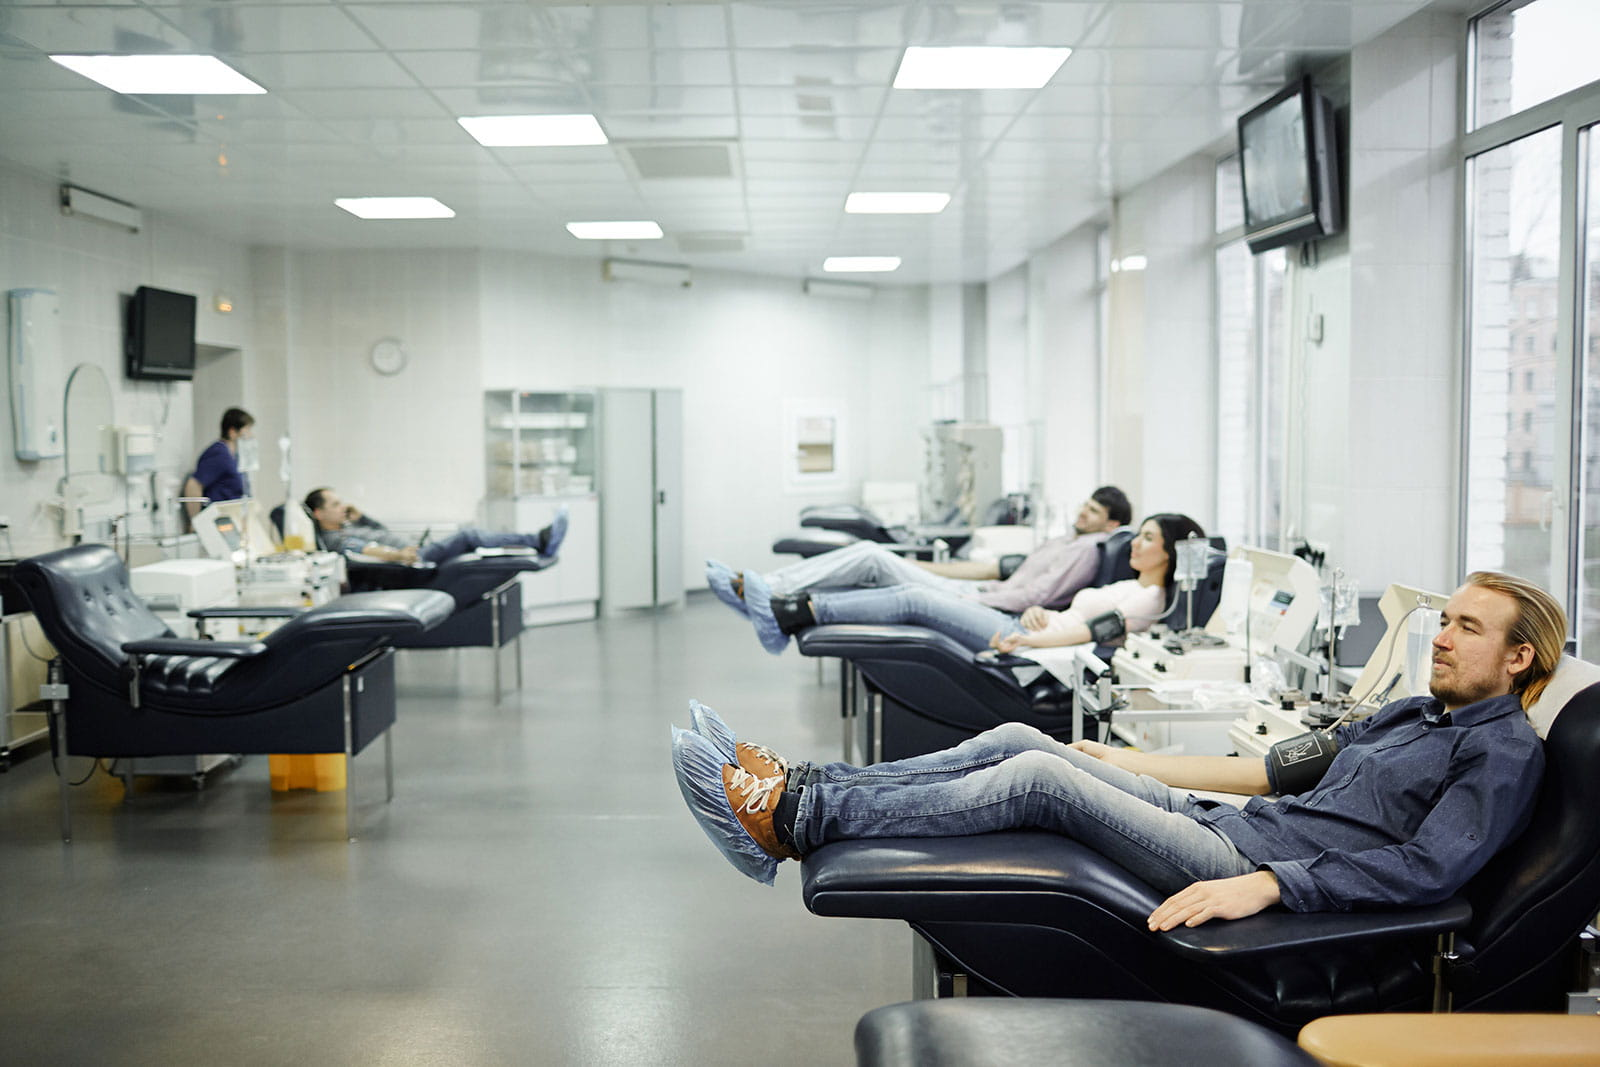 People donating blood in a donation center